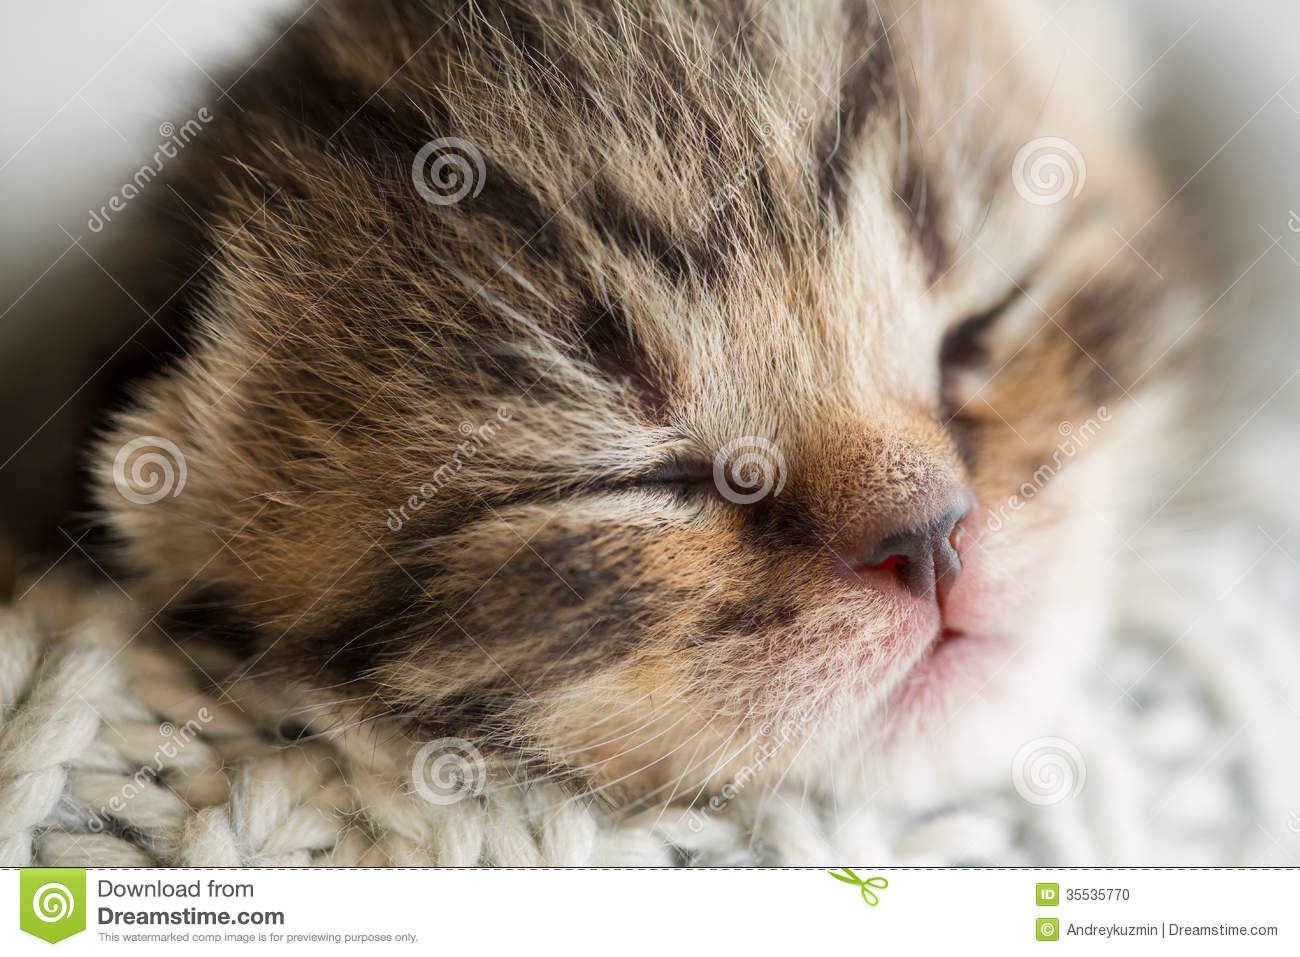 Cute Boy Child Wallpapers Newborn Sleeping Baby Kitten Stock Photo Image Of